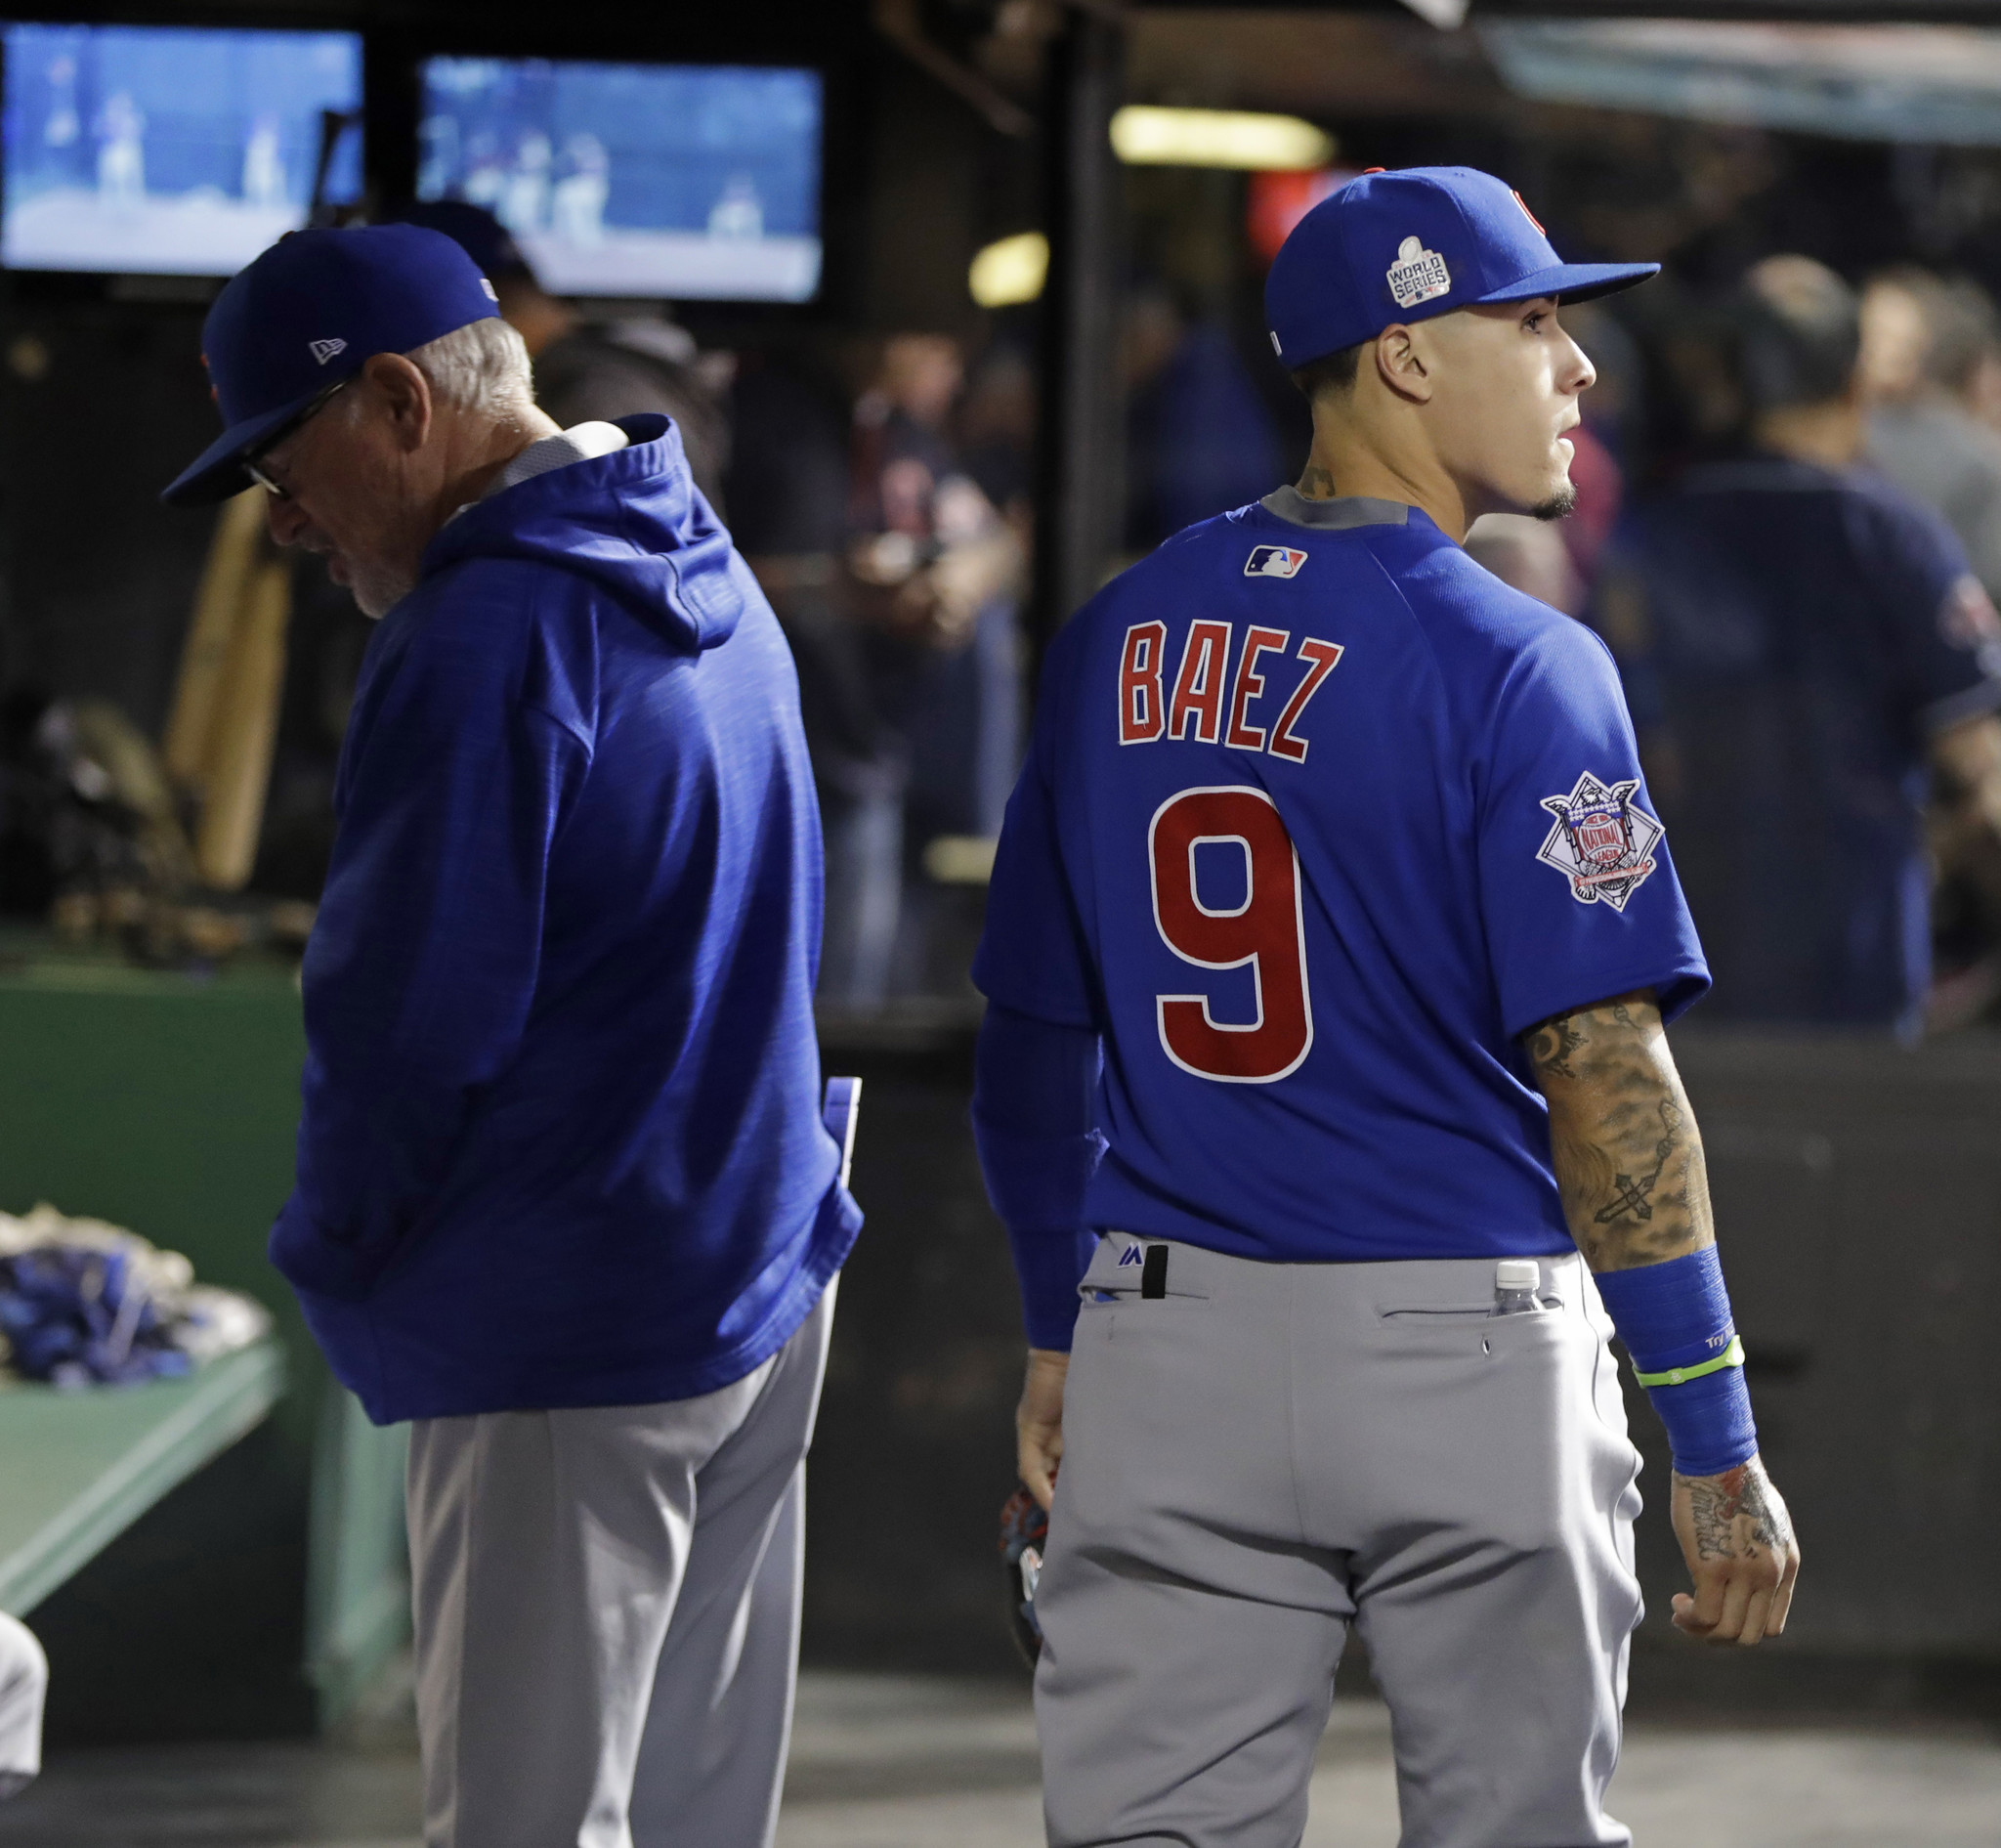 Chicago Cubs win World Series championship with 8-7 victory over Cleveland Indians